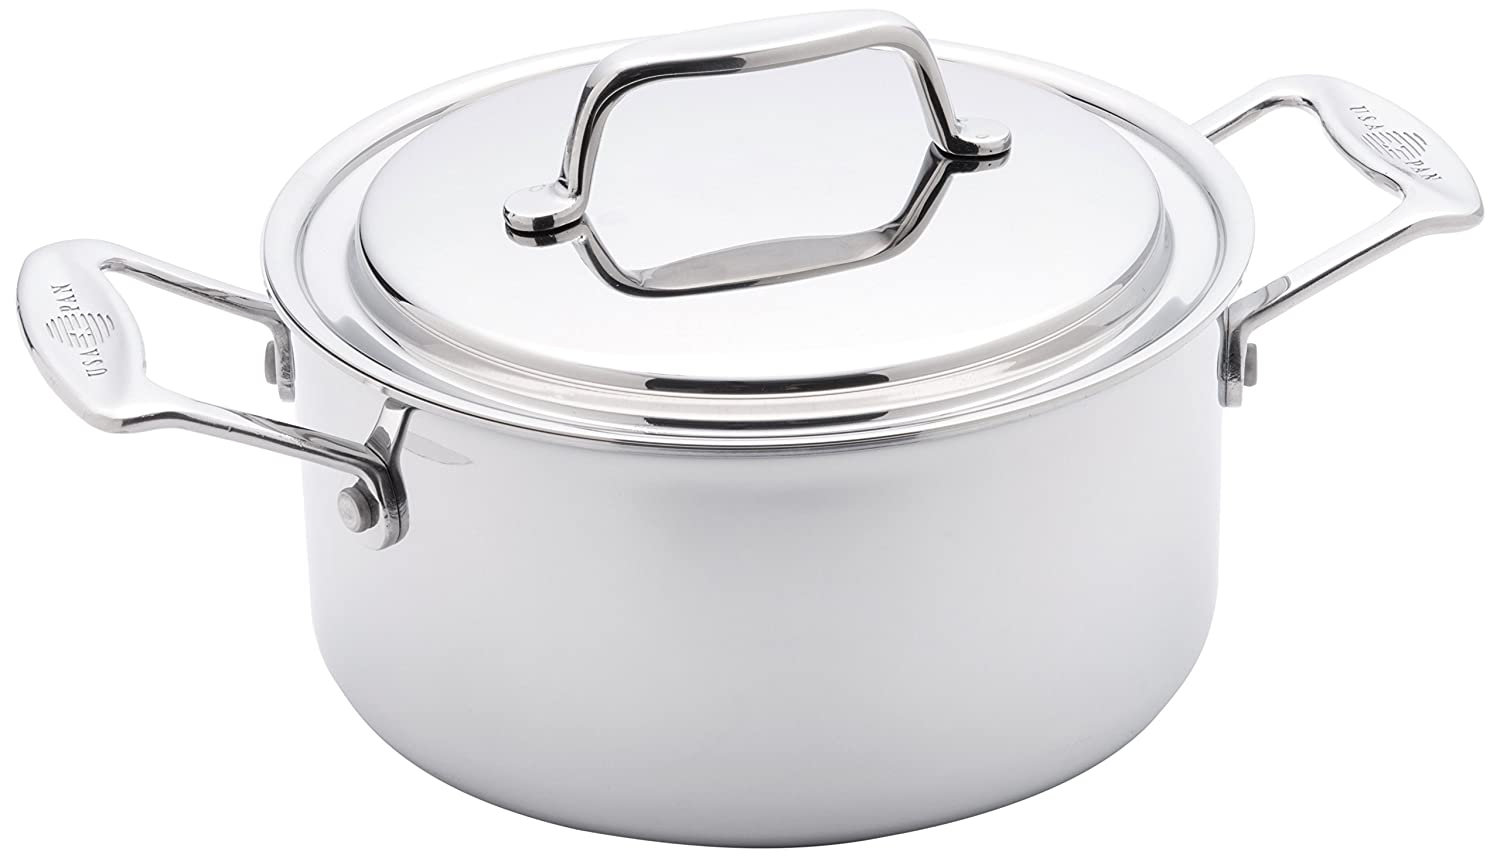 USA Pan 1510CW-1 Cookware 5-Ply Stainless Steel 3 Quart Stock Pot with Cover, Oven and Dishwasher Safe, Made in the USA Silver